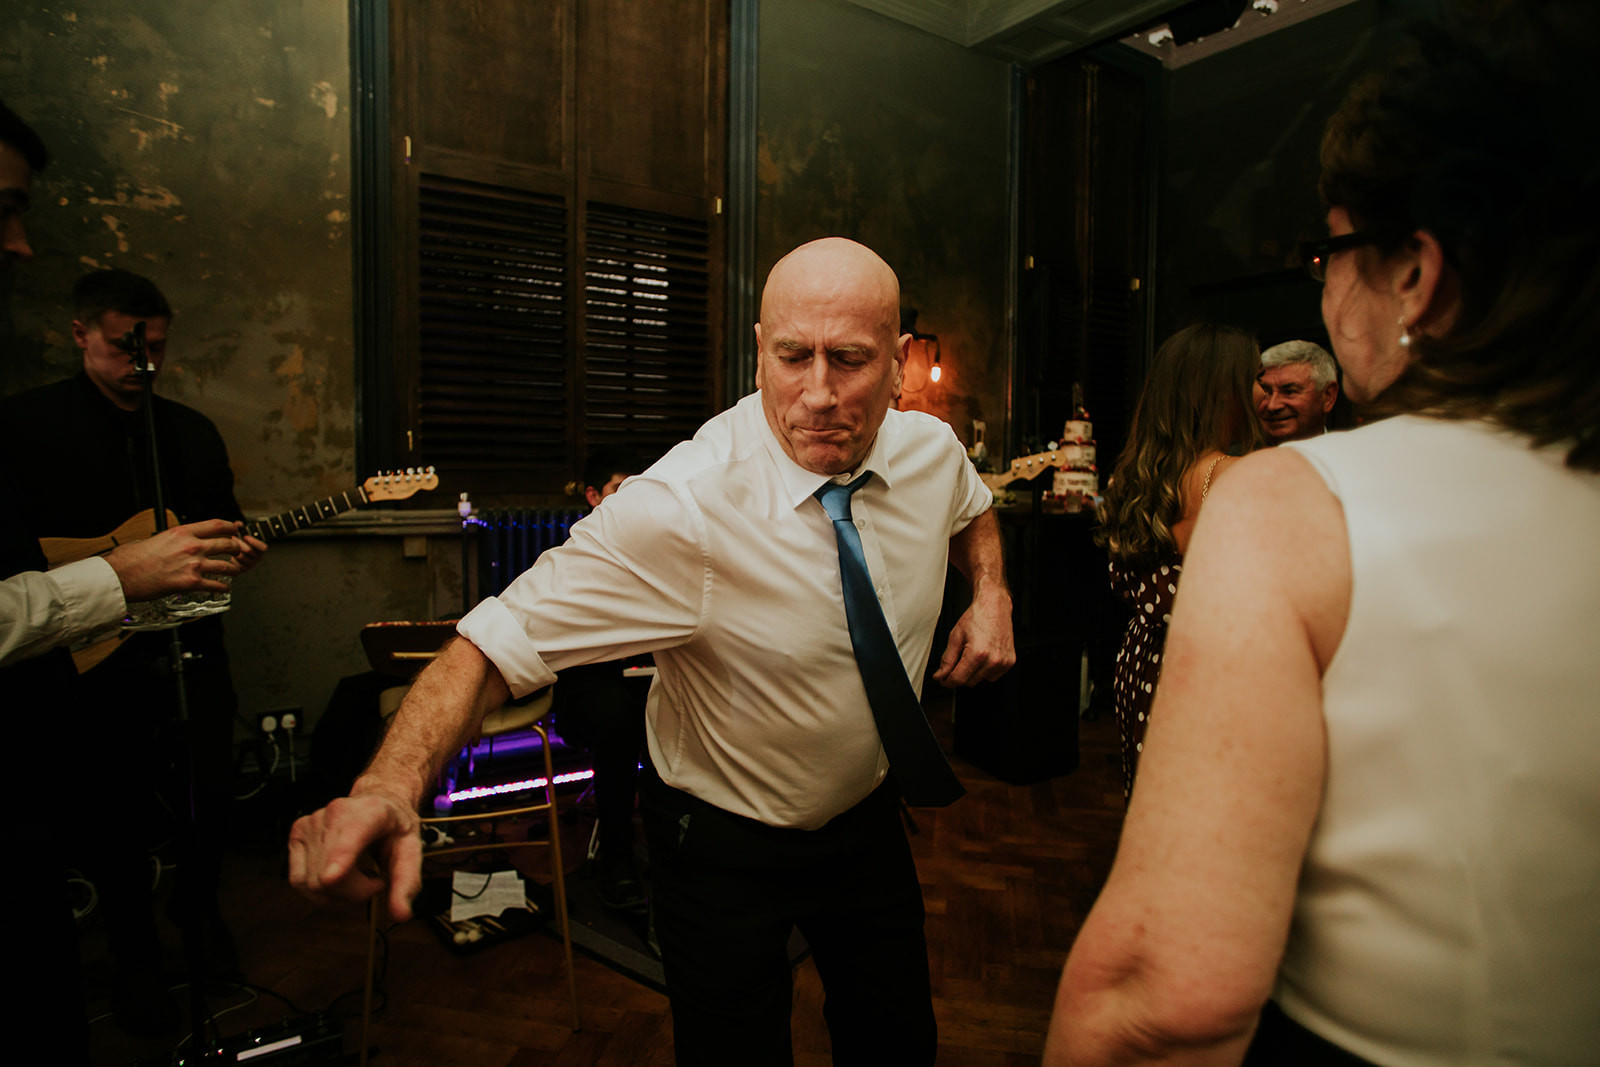 wedding guests dancing in the secret bar at the lost and found leeds club